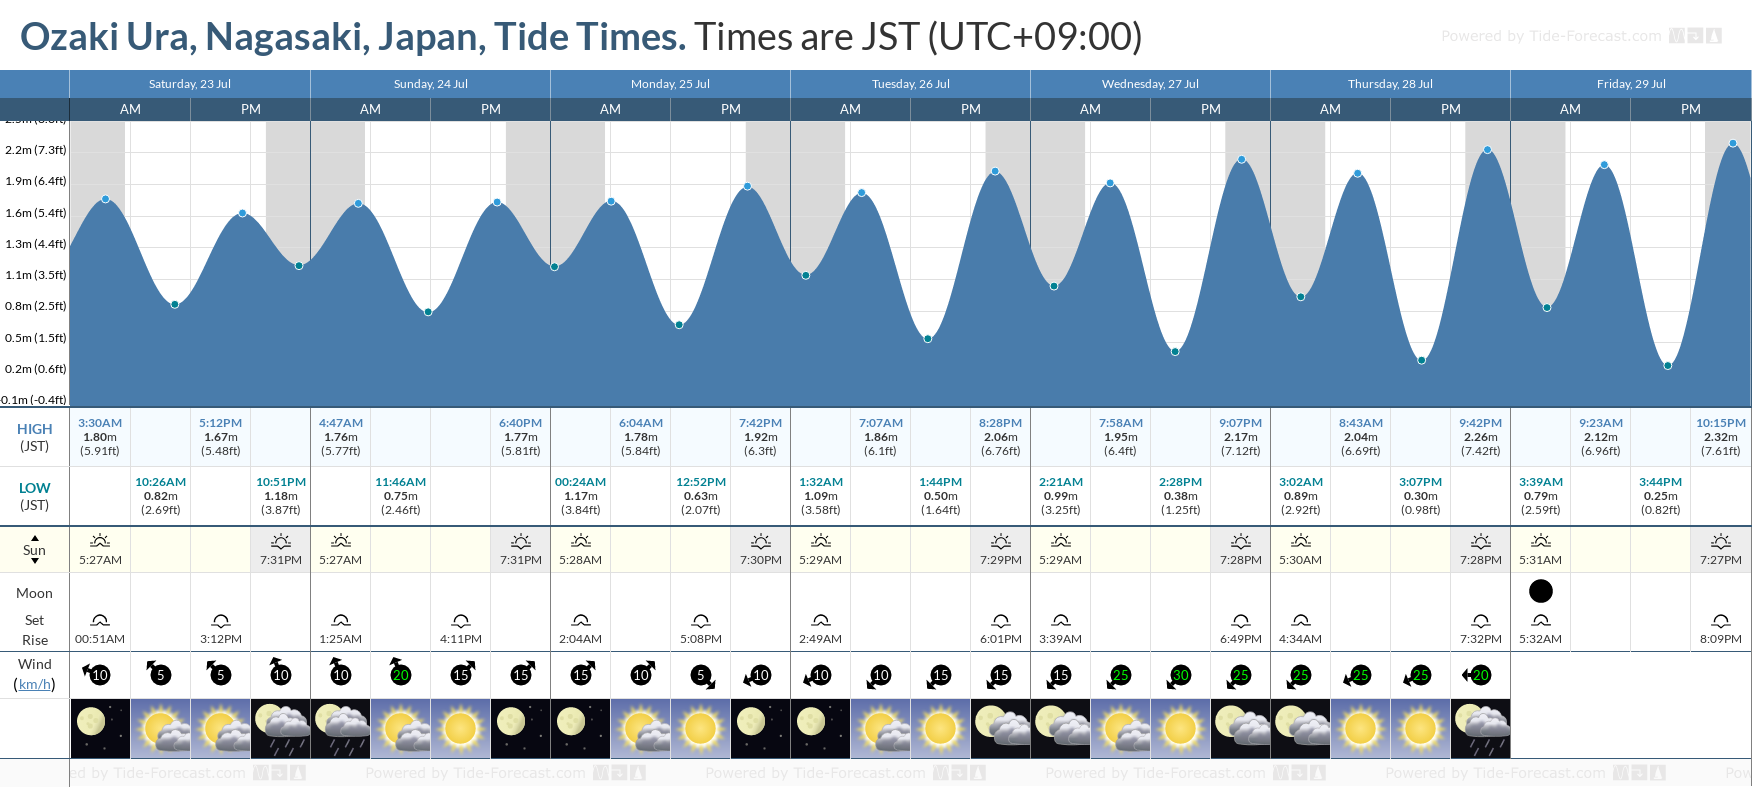 Ozaki Ura, Nagasaki, Japan Tide Chart including high and low tide tide times for the next 7 days